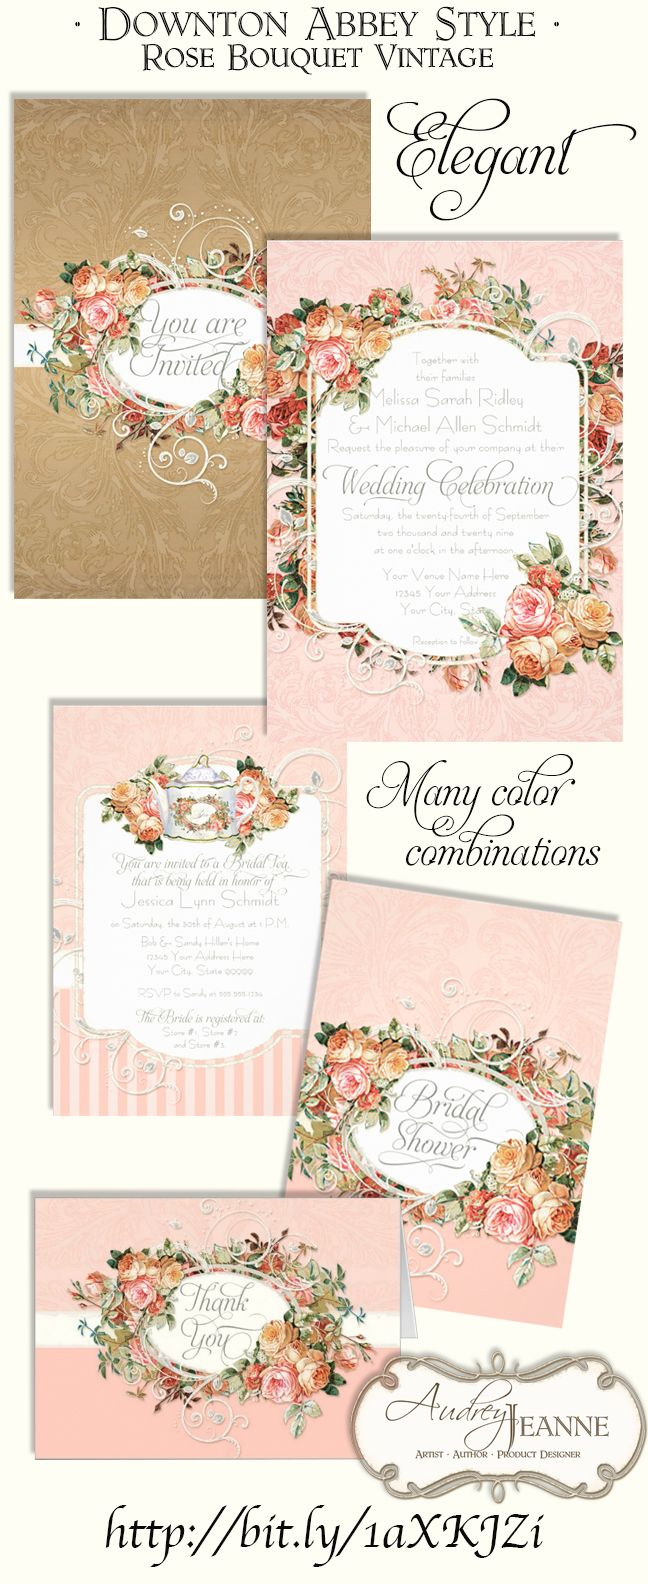 If your wedding theme is particulary lovely or lavish, this design might be for you!  For a modern, yet classic wedding invitation set worthy of even a Victorian, Edwardian or English Manor House wedding!  A beautiful vintage antique English style rose bouquet  in a rich colors have been mixed with modern swirl scroll flourish work and a subtle damask background design pattern.   #weddings #weddinginvitations #invitation #wedding #roses #elegant #blush #gold